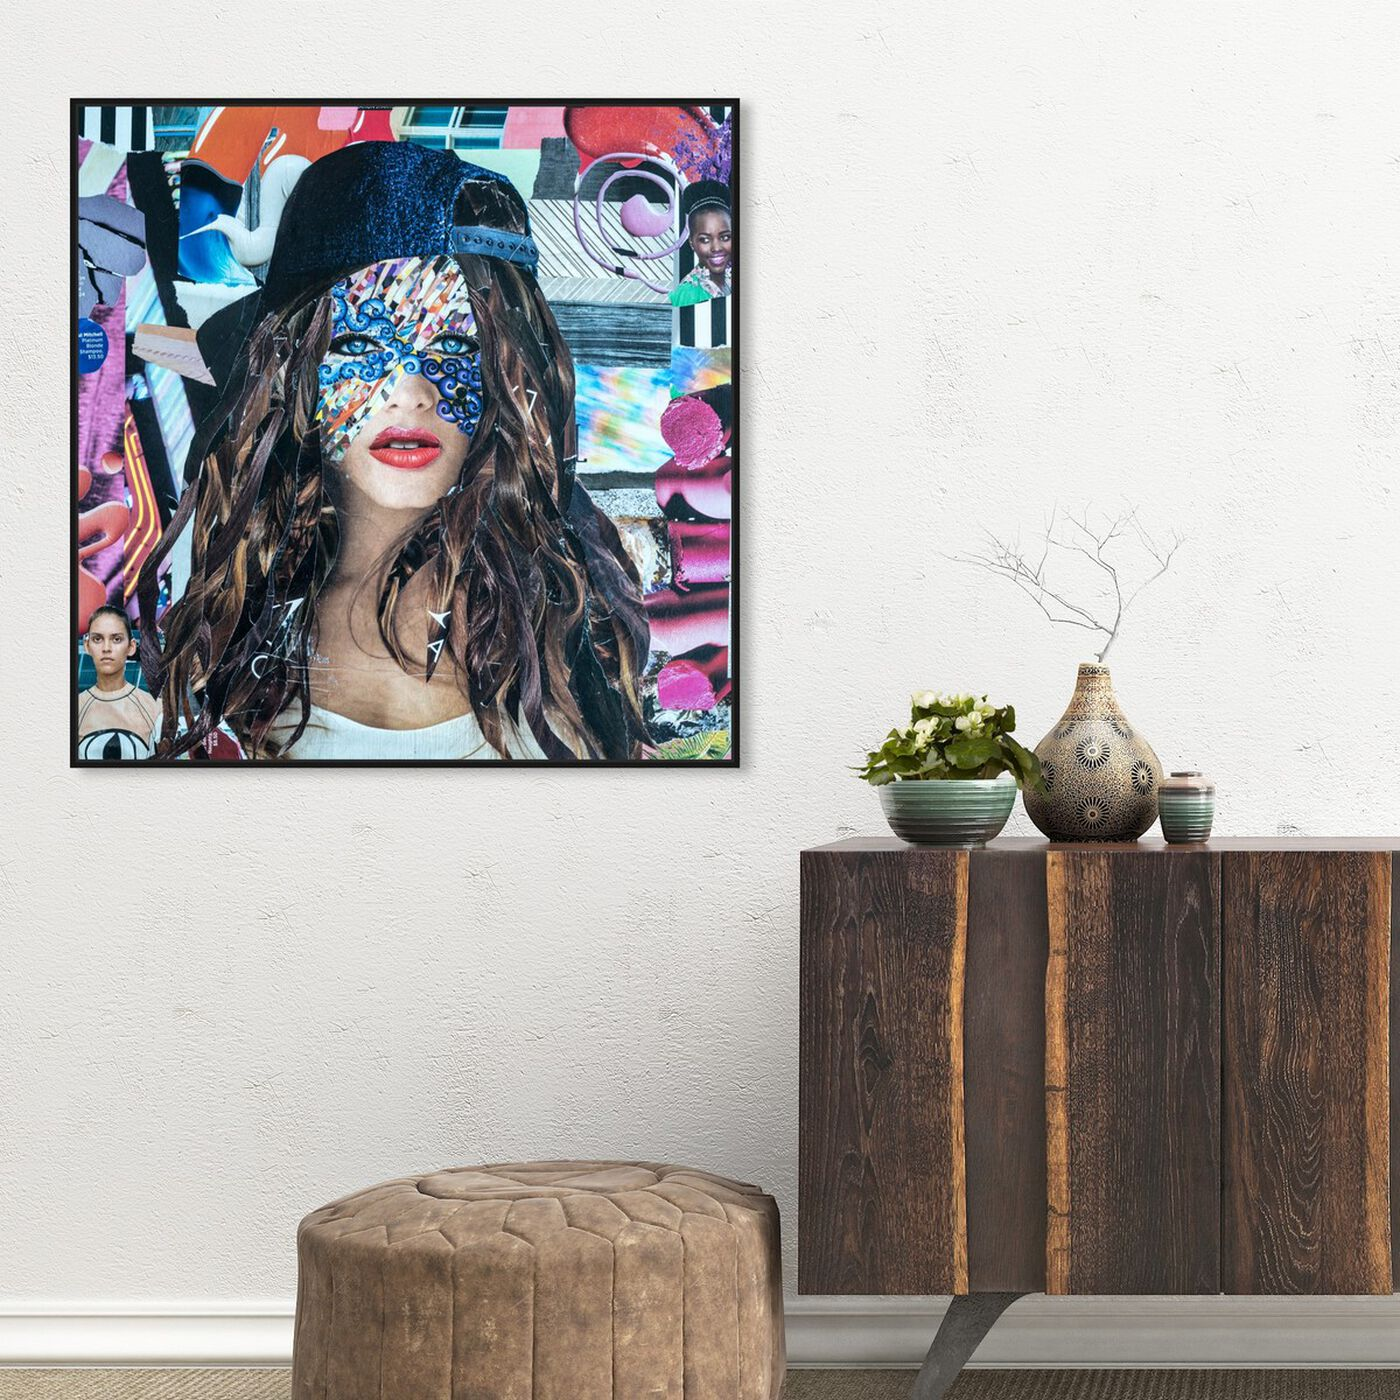 Hanging view of Ruby by Katy Hirschfeld featuring fashion and glam and portraits art.